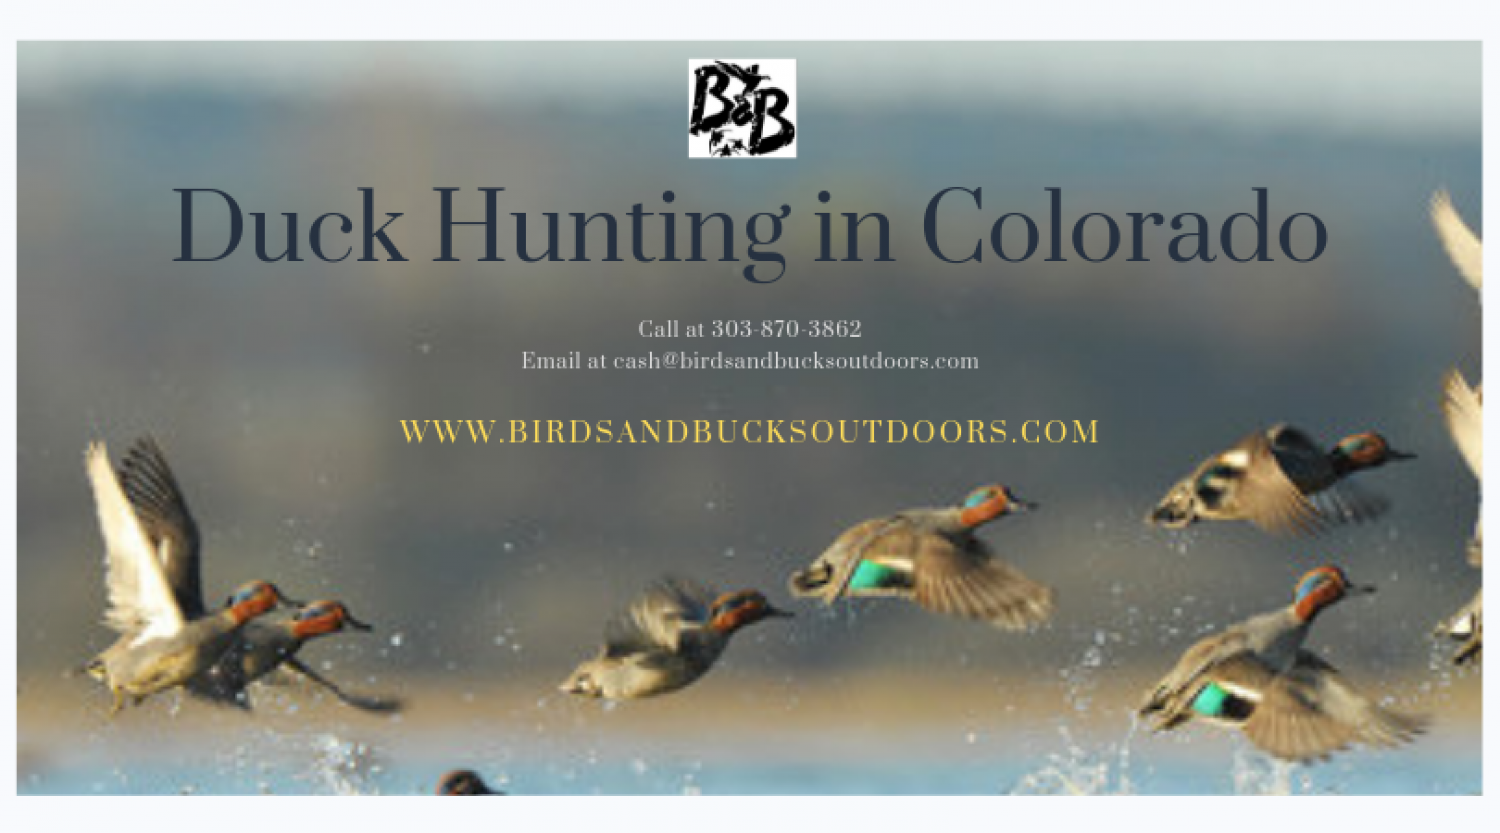 Duck Hunting in Colorado Infographic